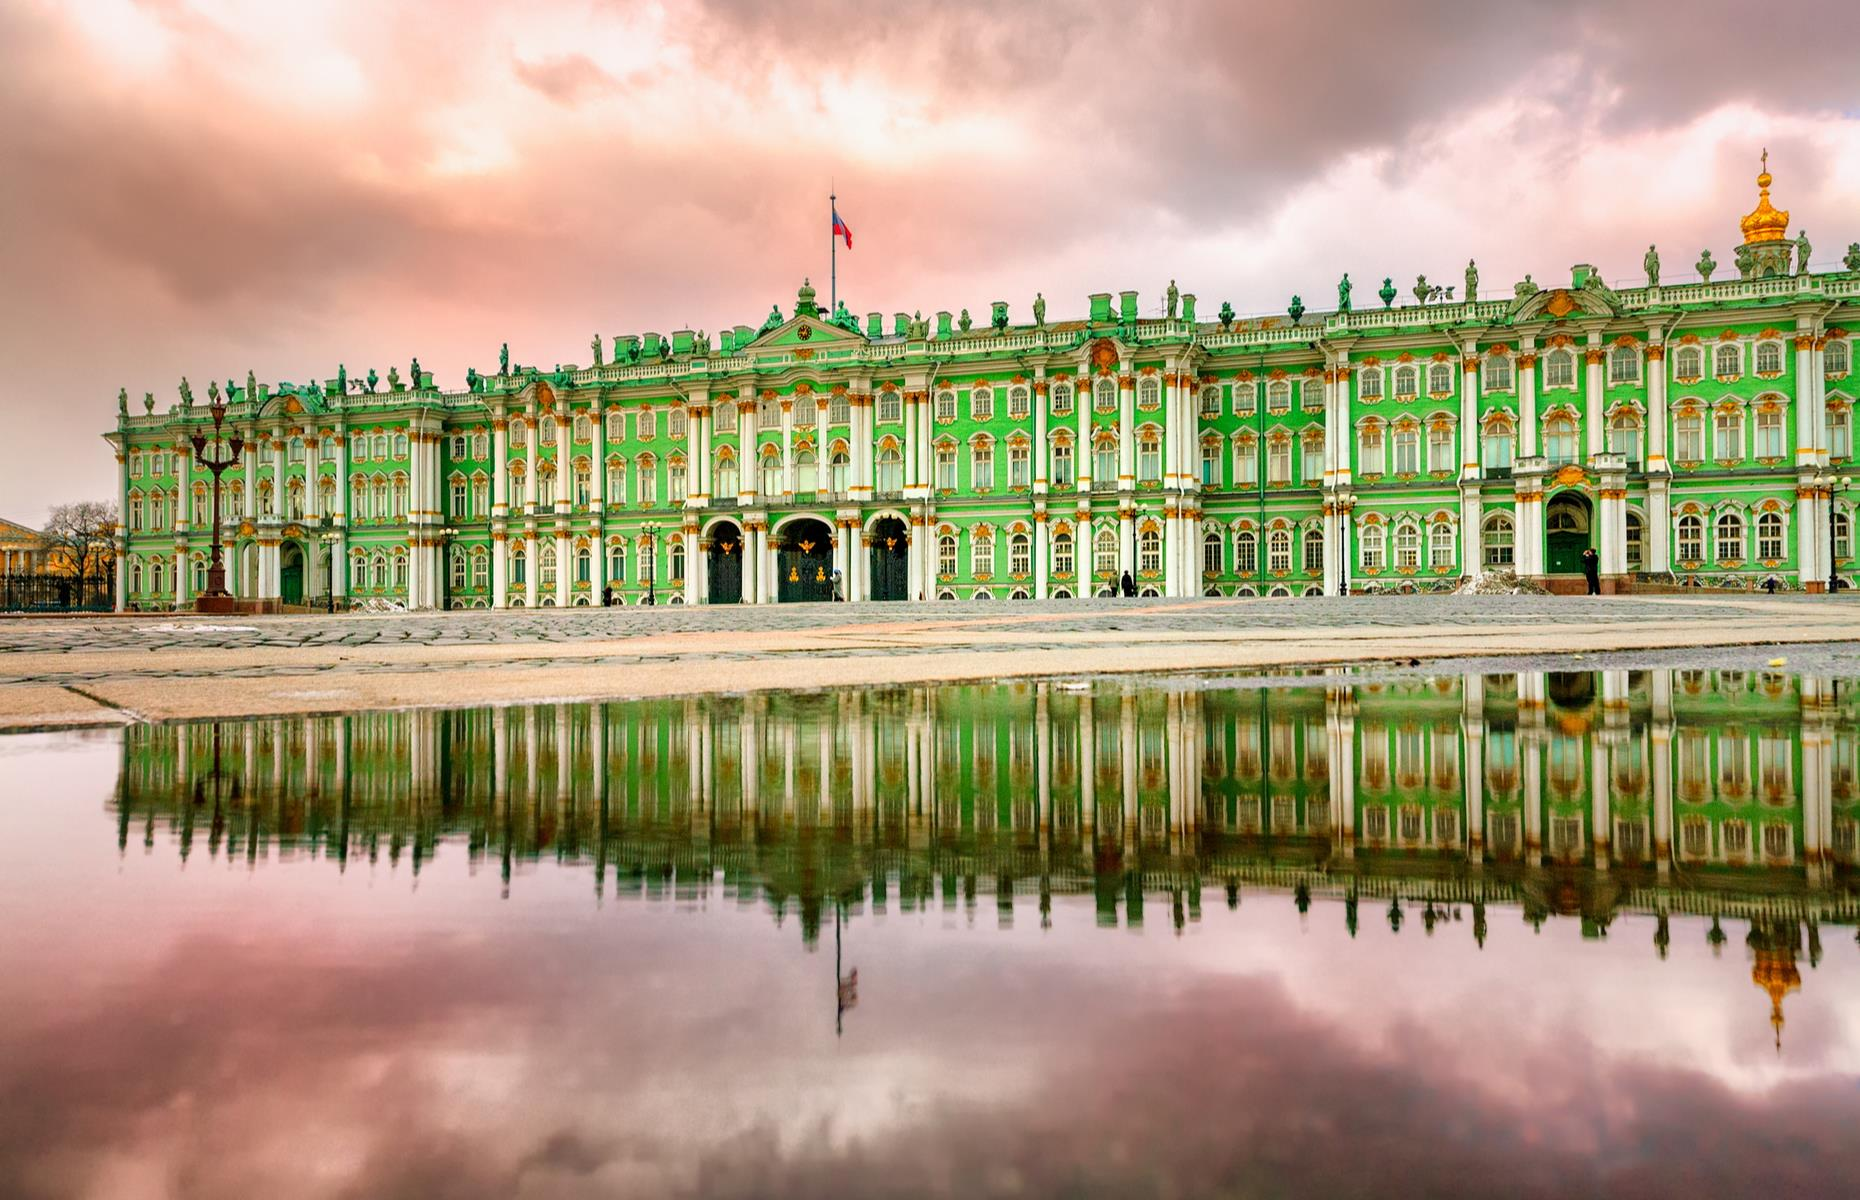 Slide 7 of 53: This Baroque-style masterpiece is St Petersburg's most famous landmark, and among the world's most lavishly lovely palaces. The mint, gold and ivory exterior looks like it's popped straight out of a Wes Anderson movie, or perhaps fallen off a particularly extravagant wedding cake.